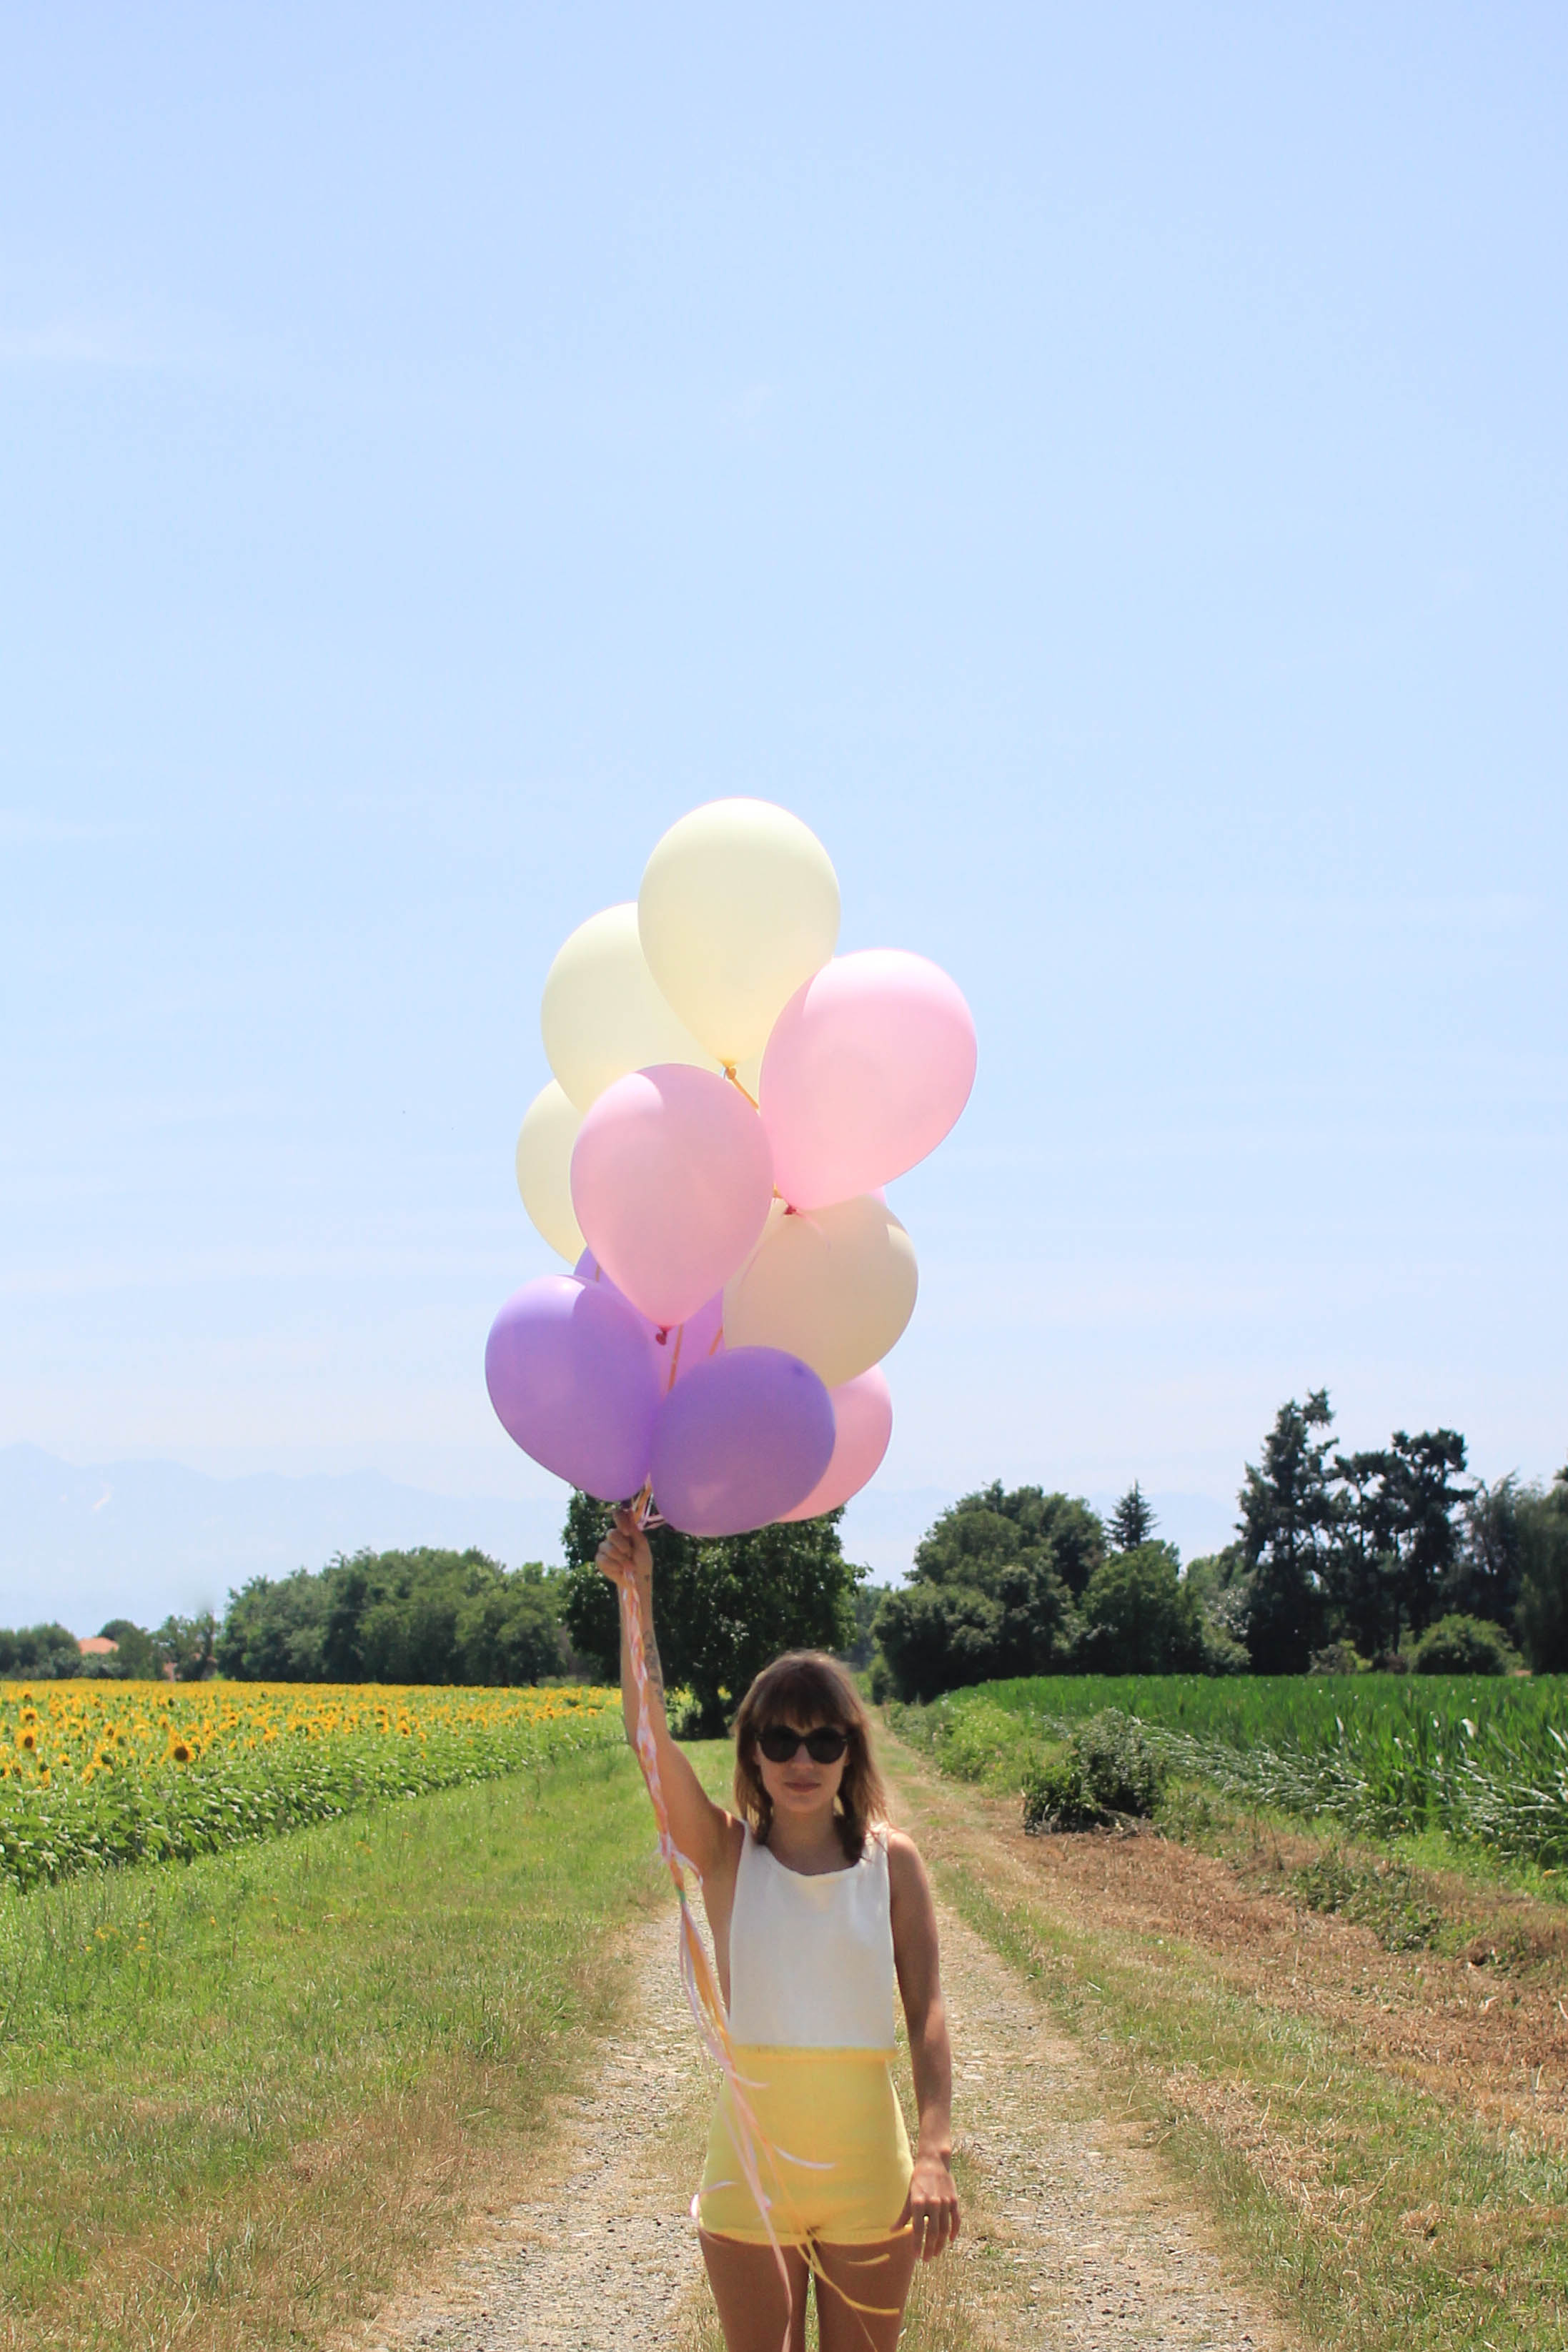 Sunflowers and balloons 1 | SP4NK BLOG